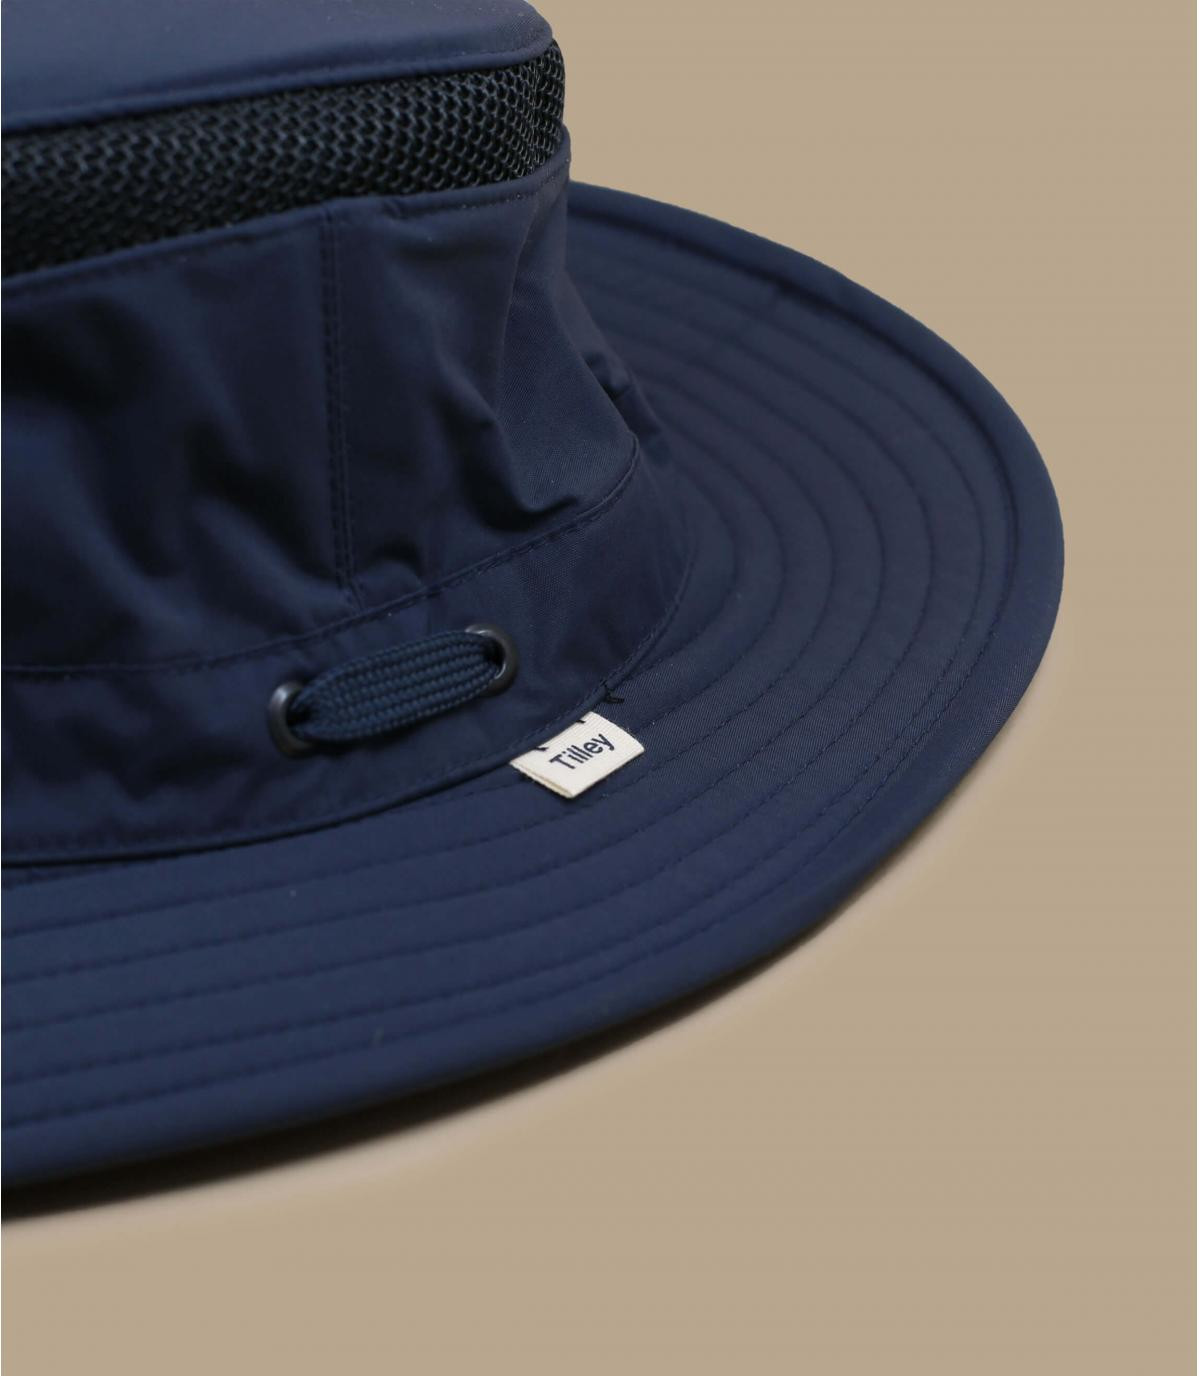 water repellent and breathable hat